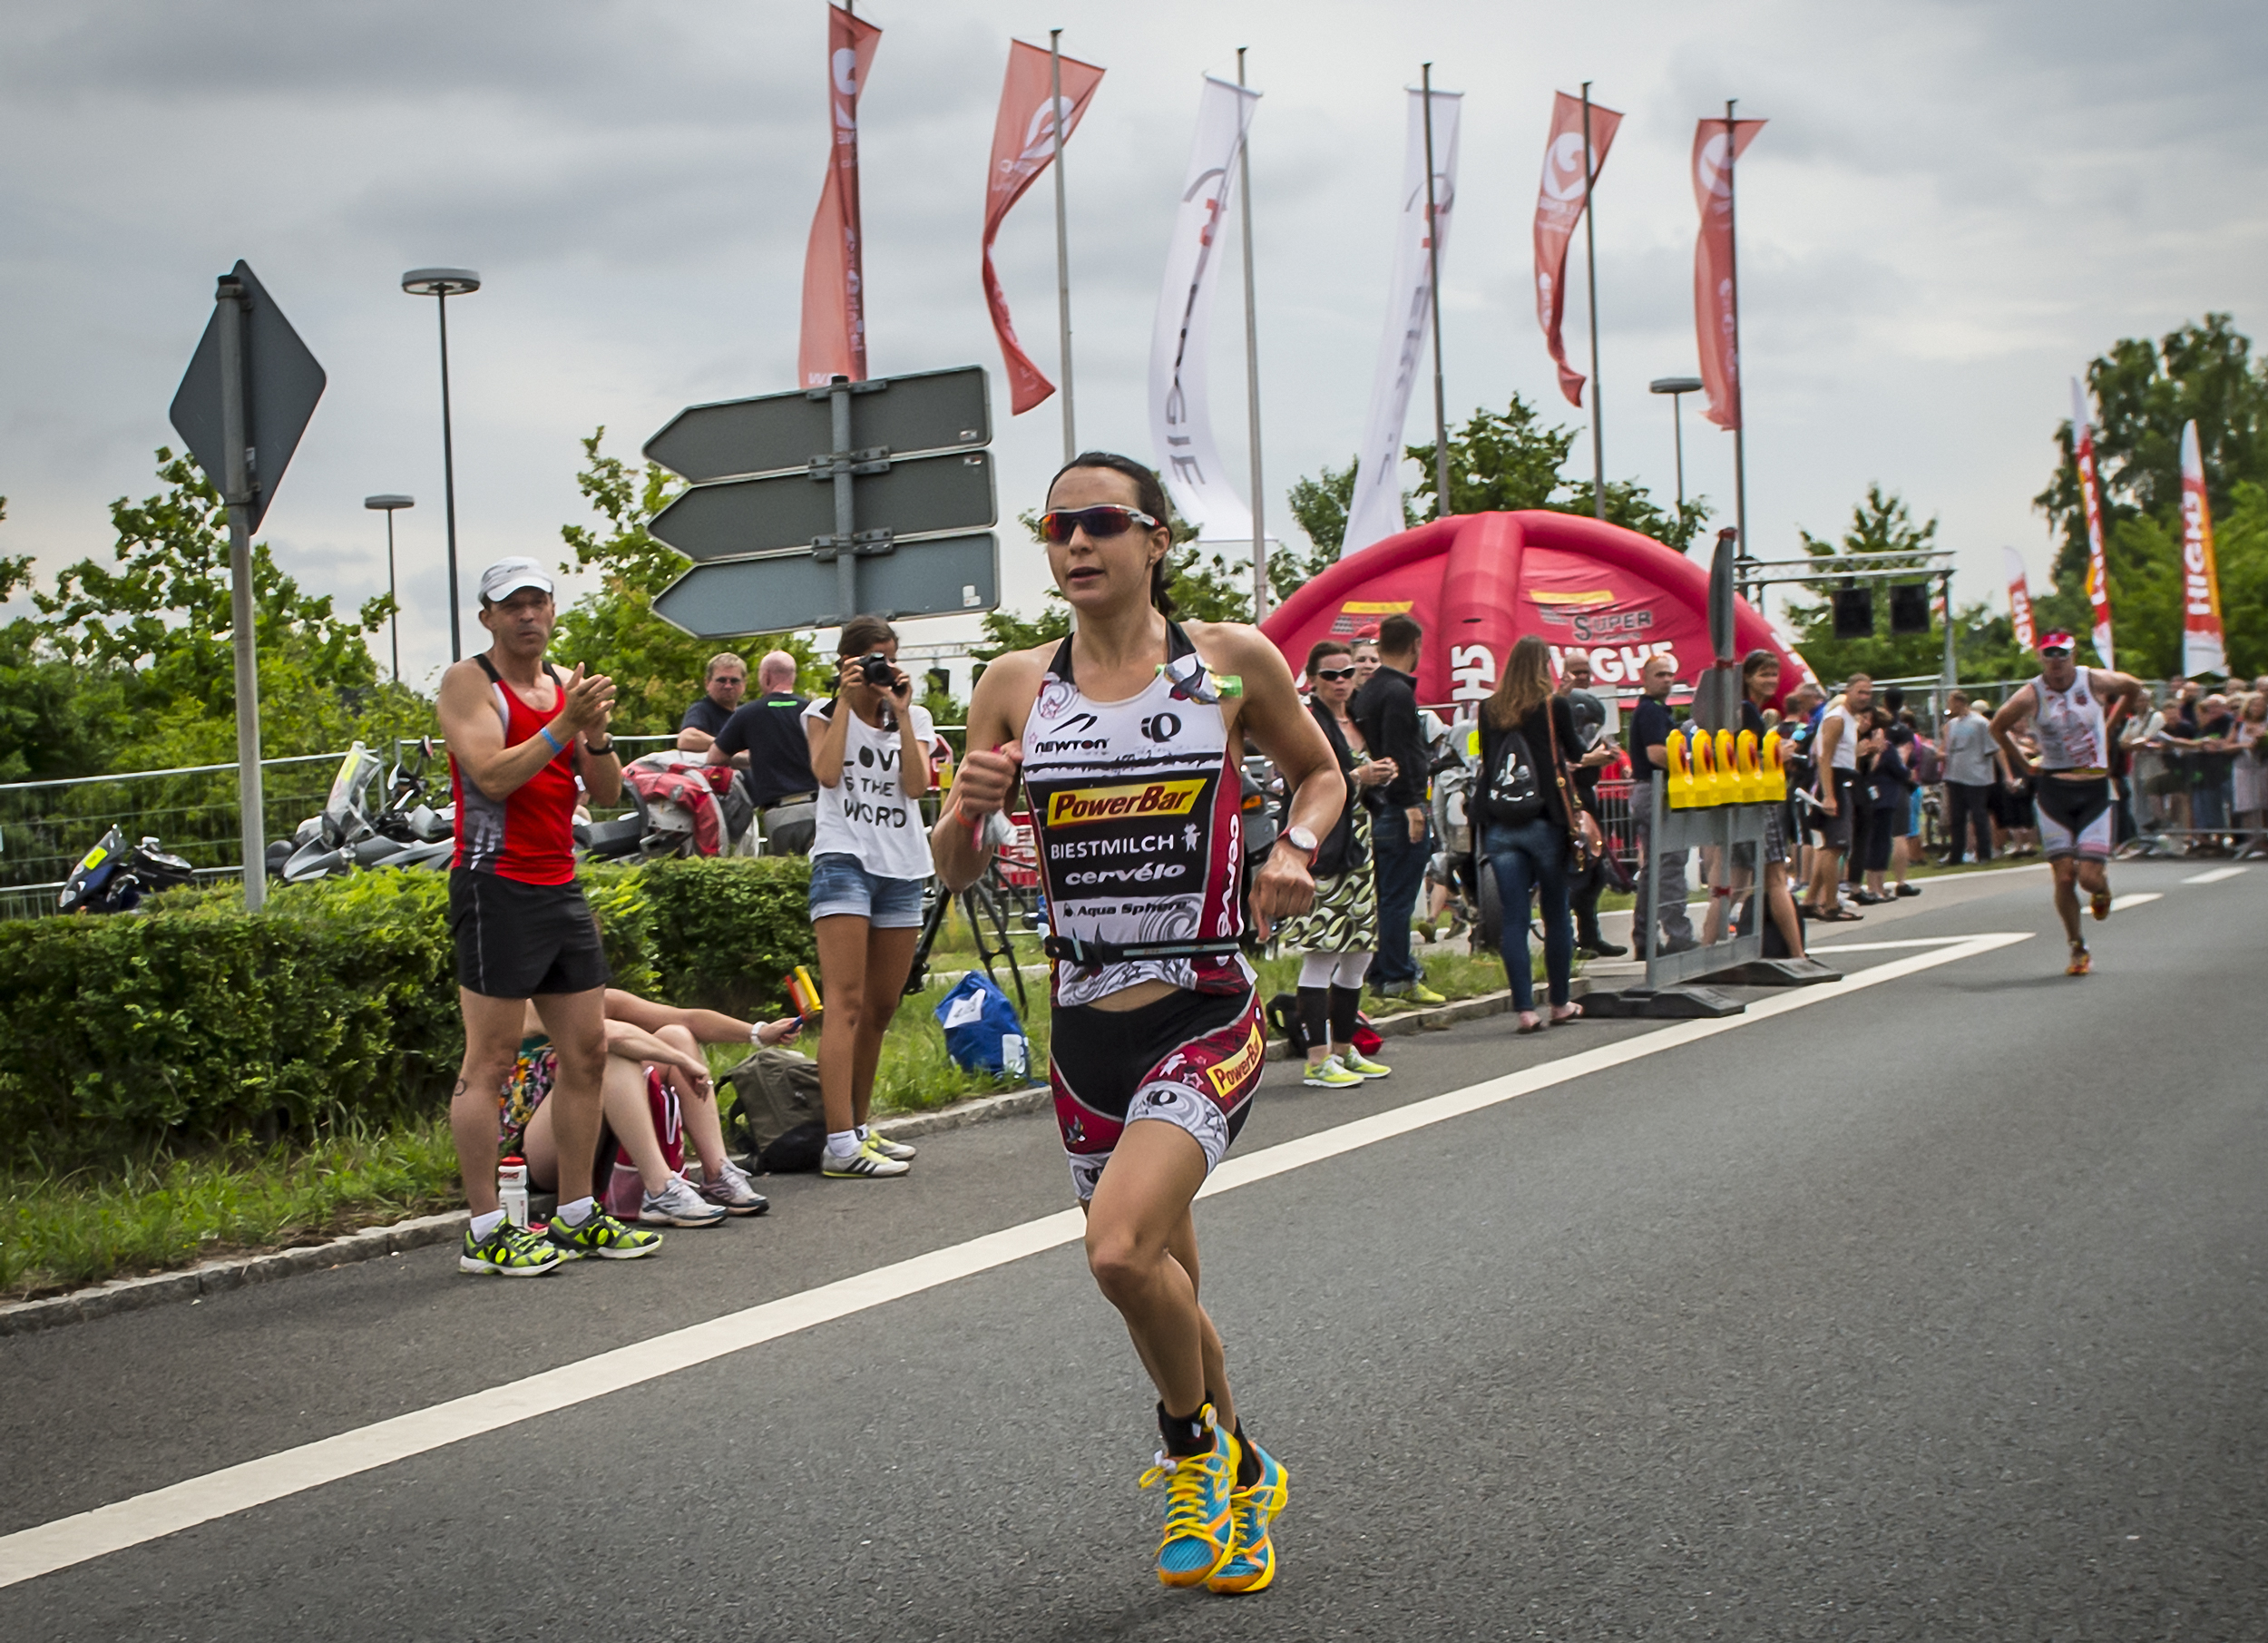 Newton Running has signed a three-year deal to sponsor Ironman triathlete Rachel Joyce.